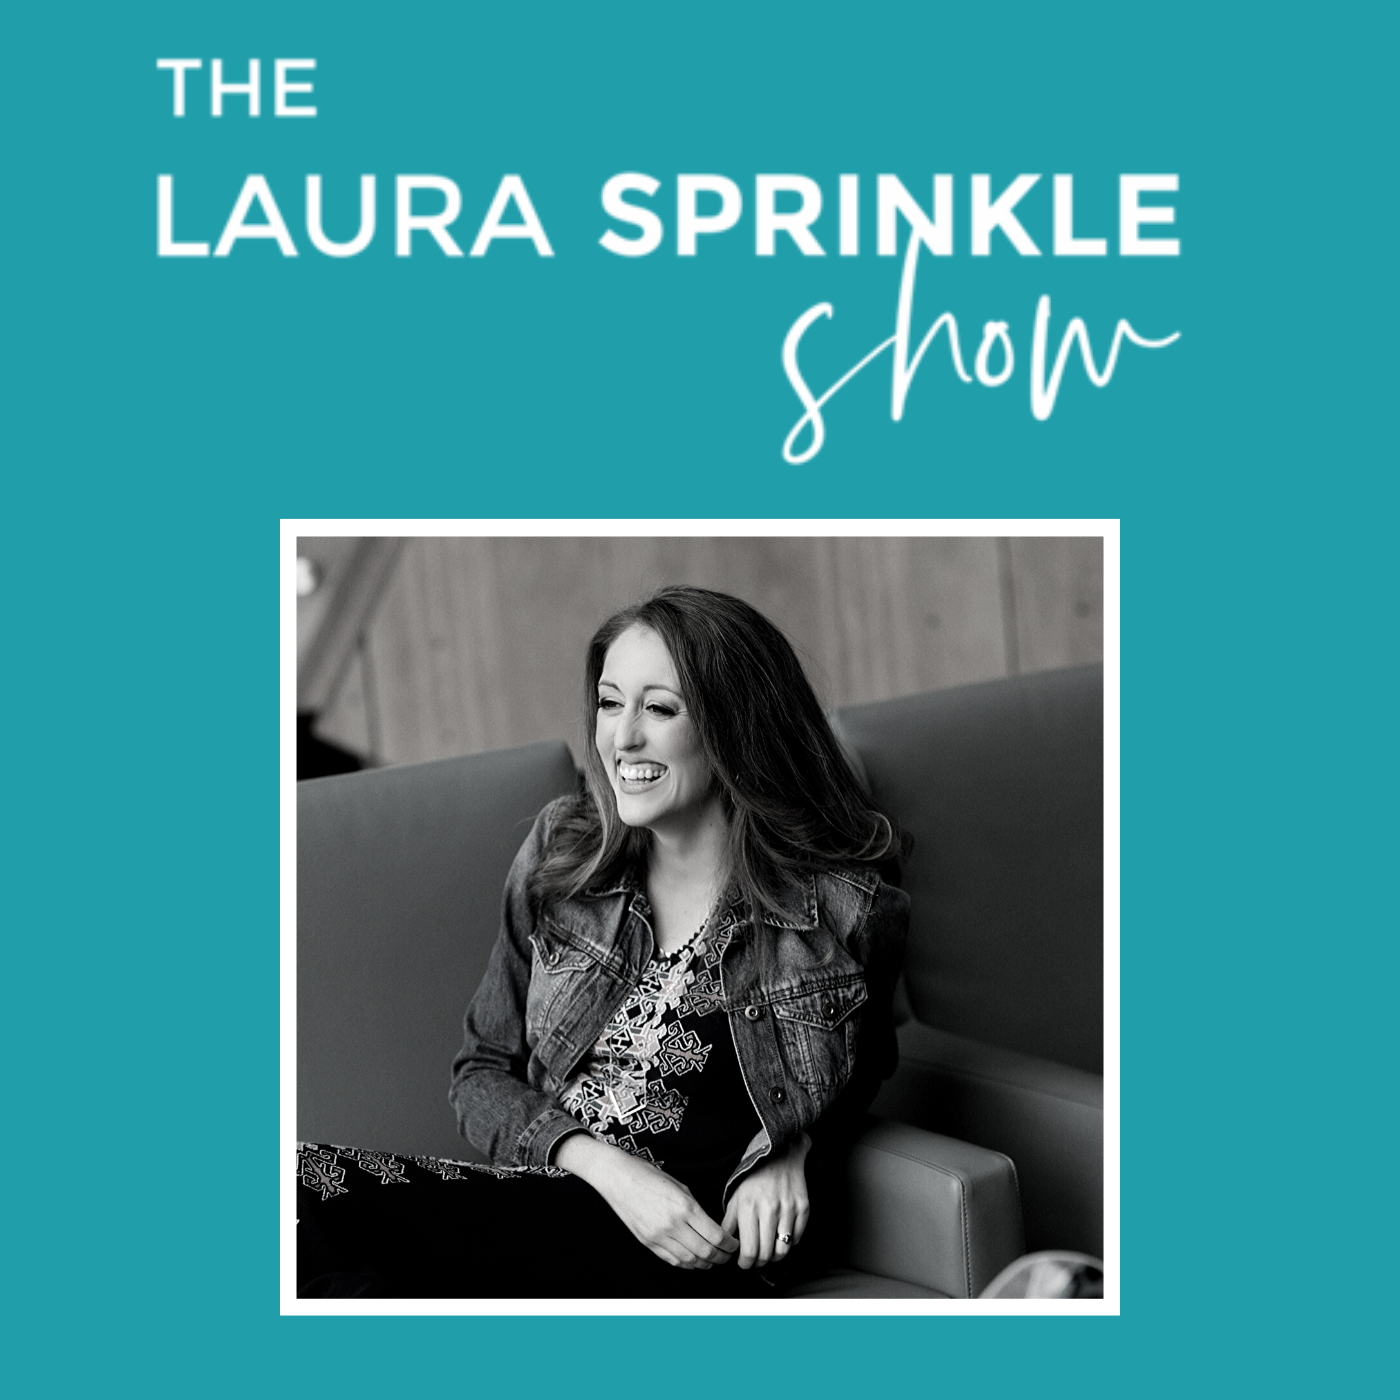 The Laura Sprinkle Show show art